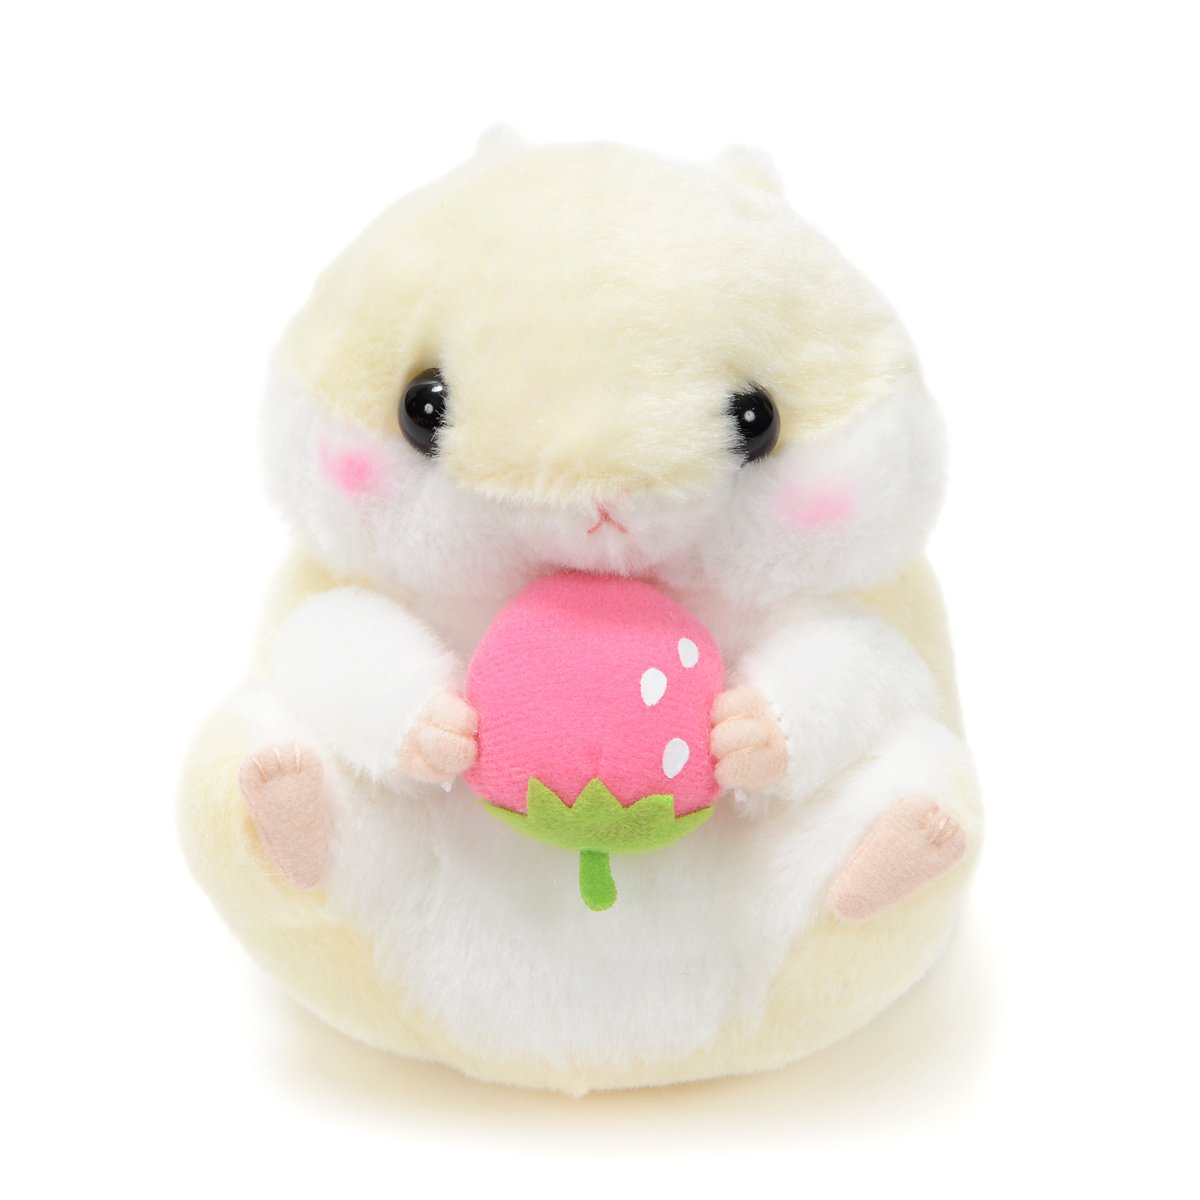 Plush Hamster, Amuse, Coroham Coron, Ichigo Hamster Plush Collection Purin, Yellow, 5 Inches